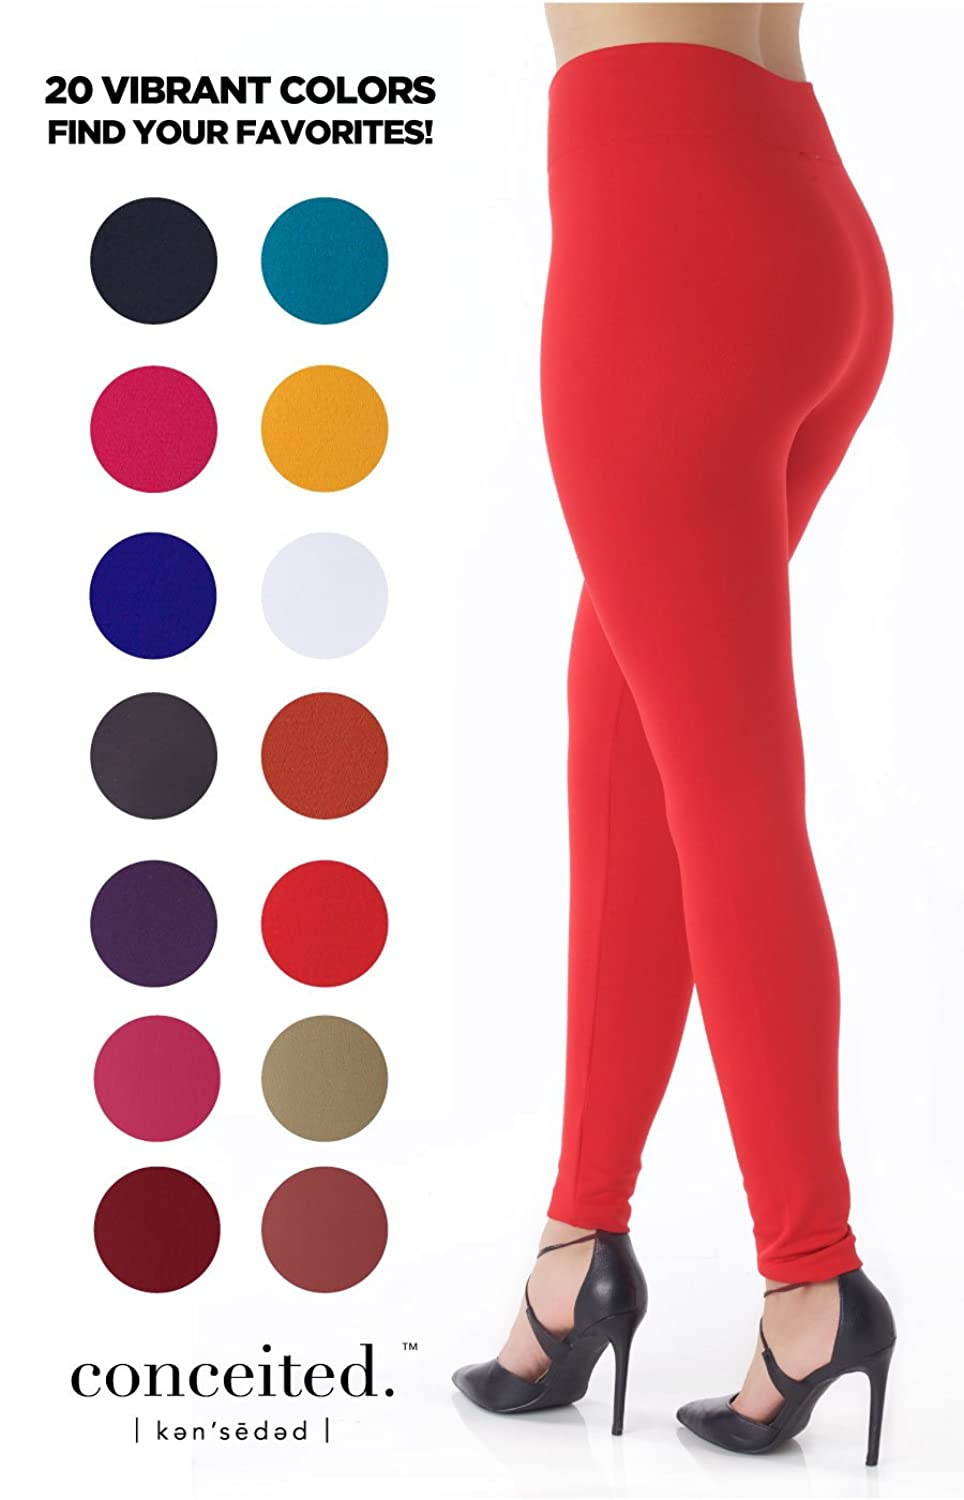 Premium Warm Fleece Lined Leggings High Waist Tights - Regular and Plus Size - 20 Colors